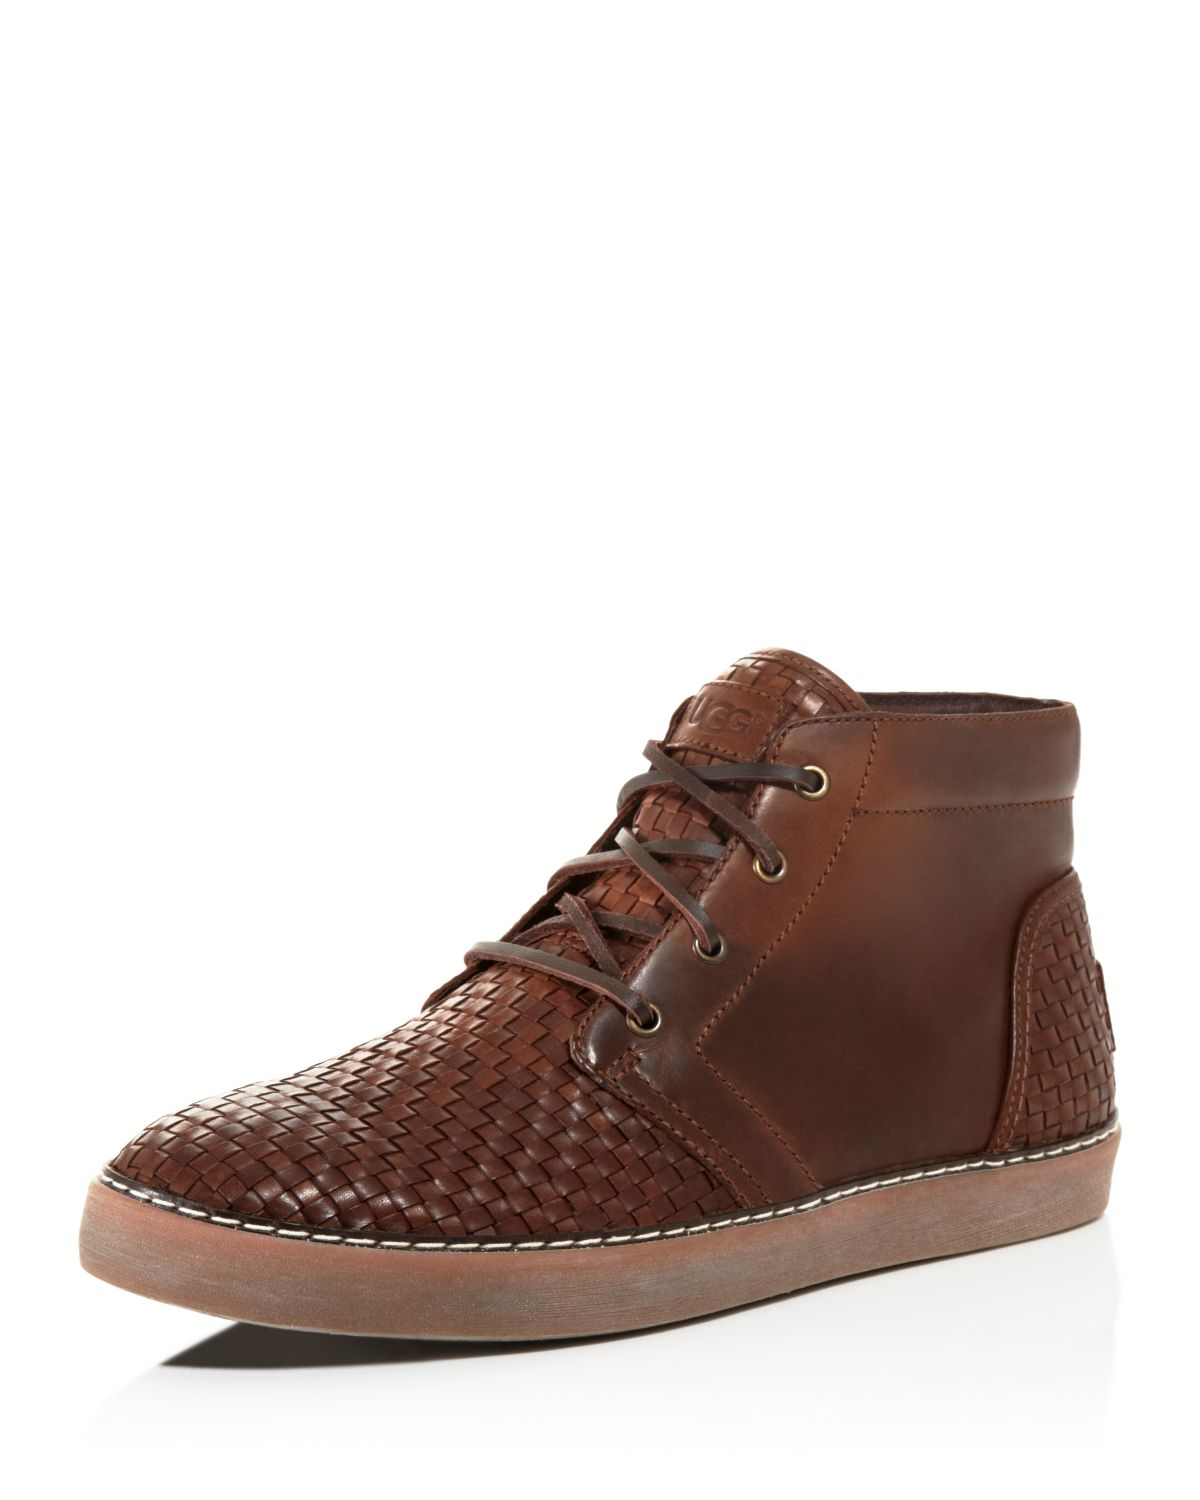 Bally Mens Shoes Nordstrom